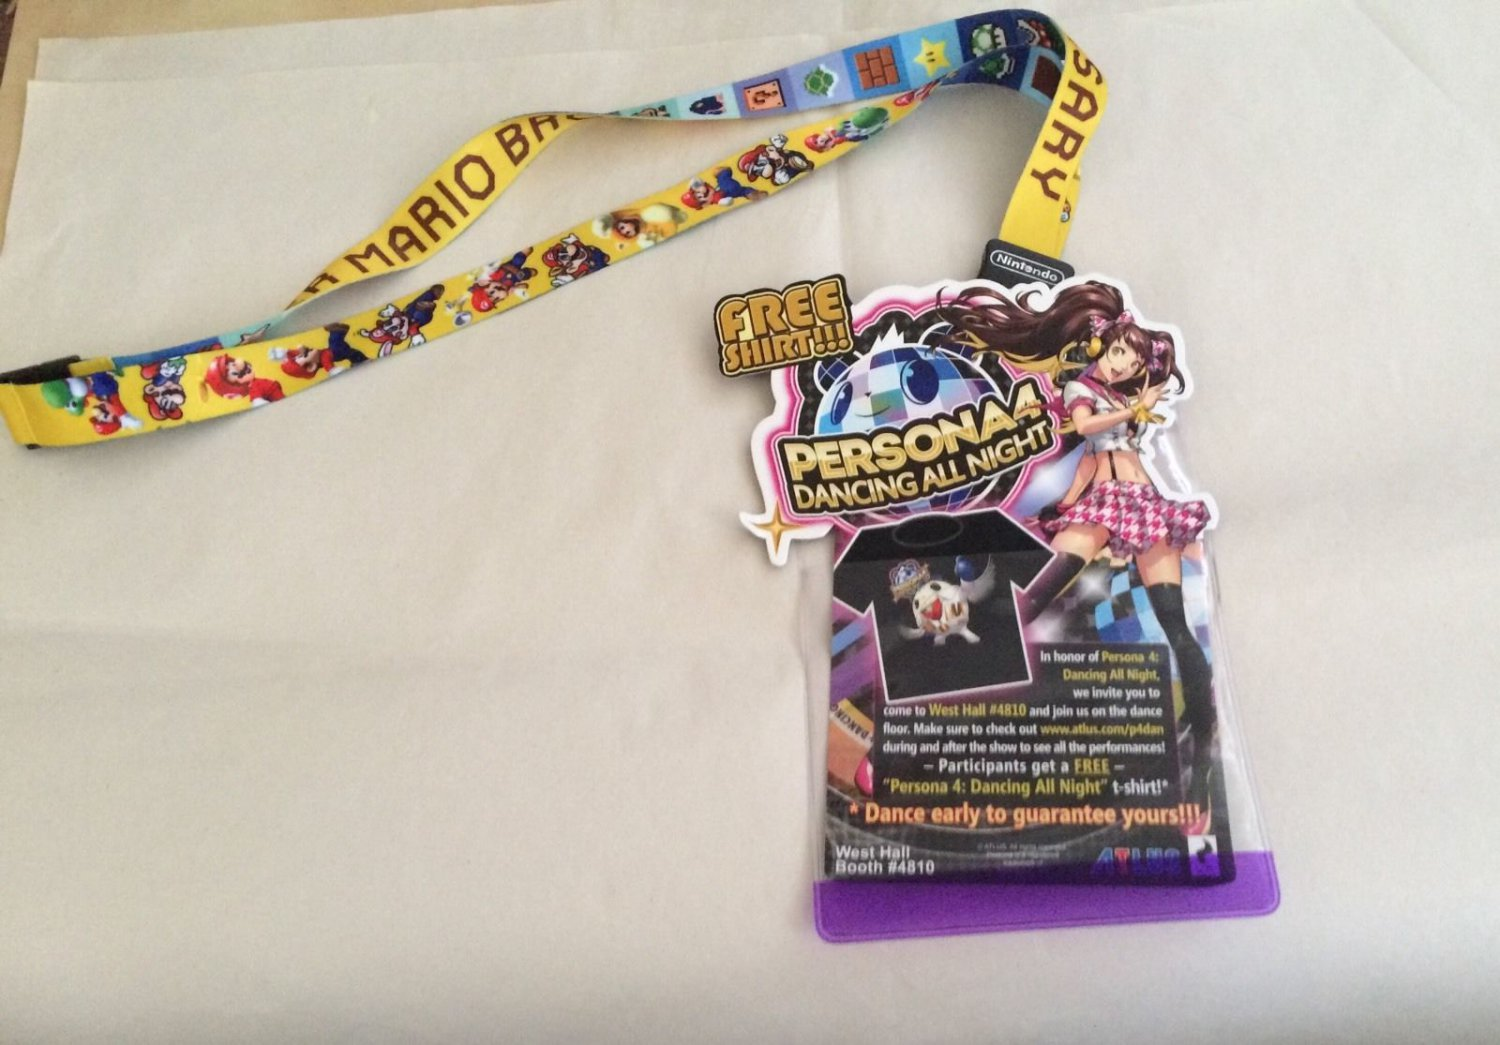 E3 2015 Super Mario Bros 30th Anniversary Lanyard